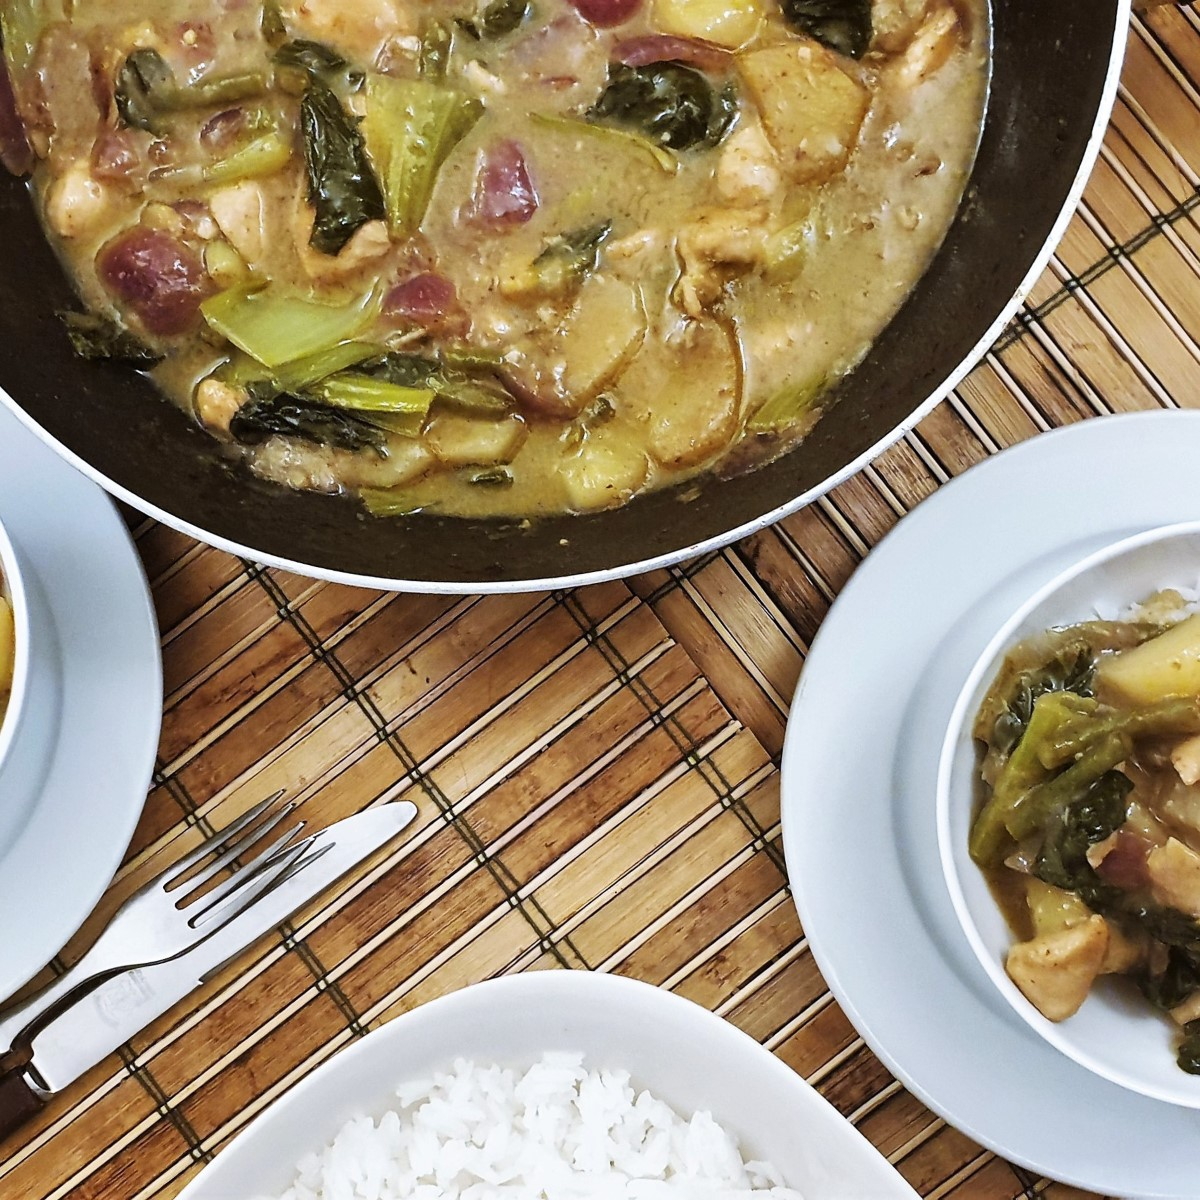 Overhead shot of a wok filled with thai green curry.